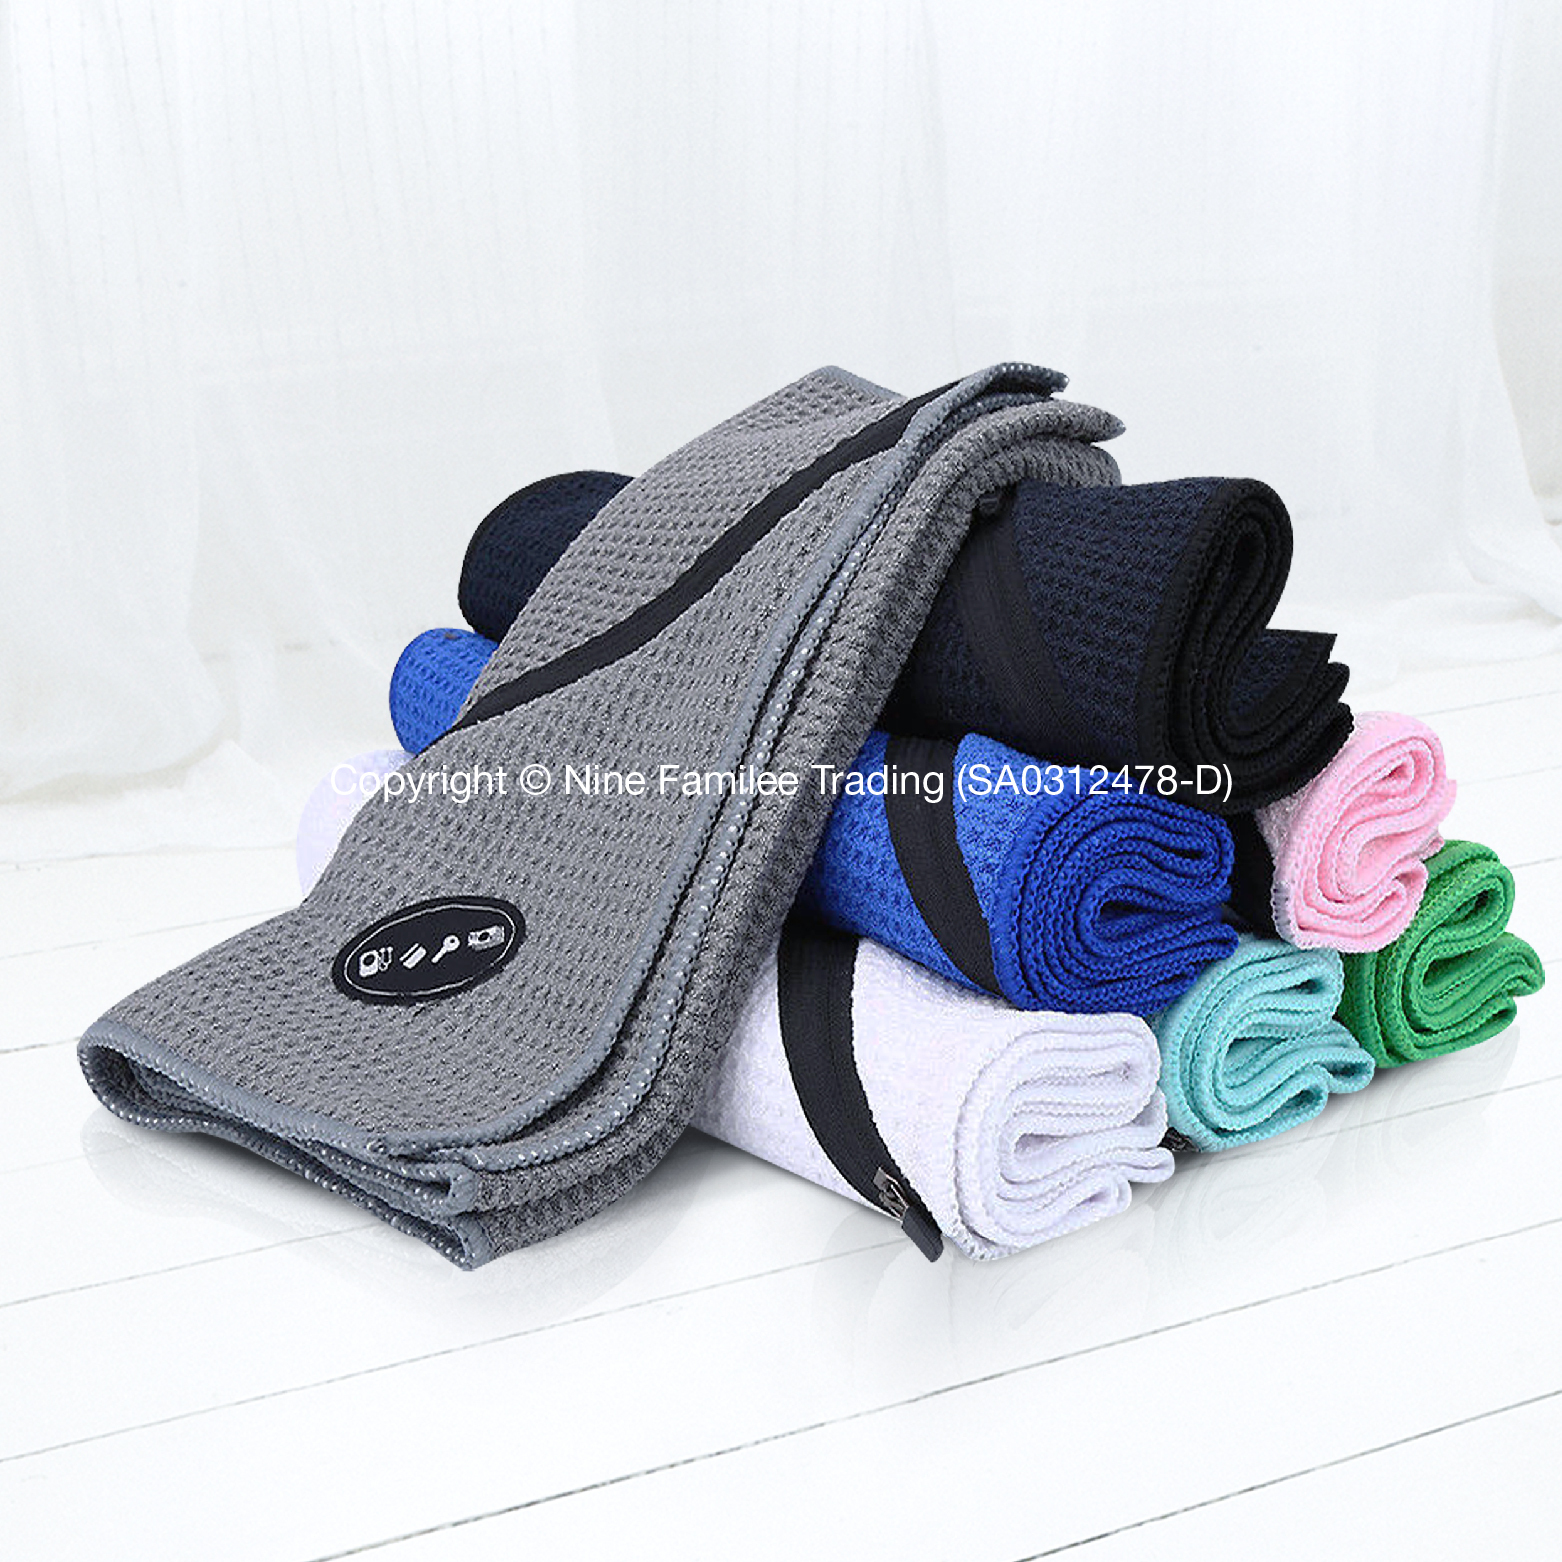 Products - Zip Pocket Sports Towel-01.jpg